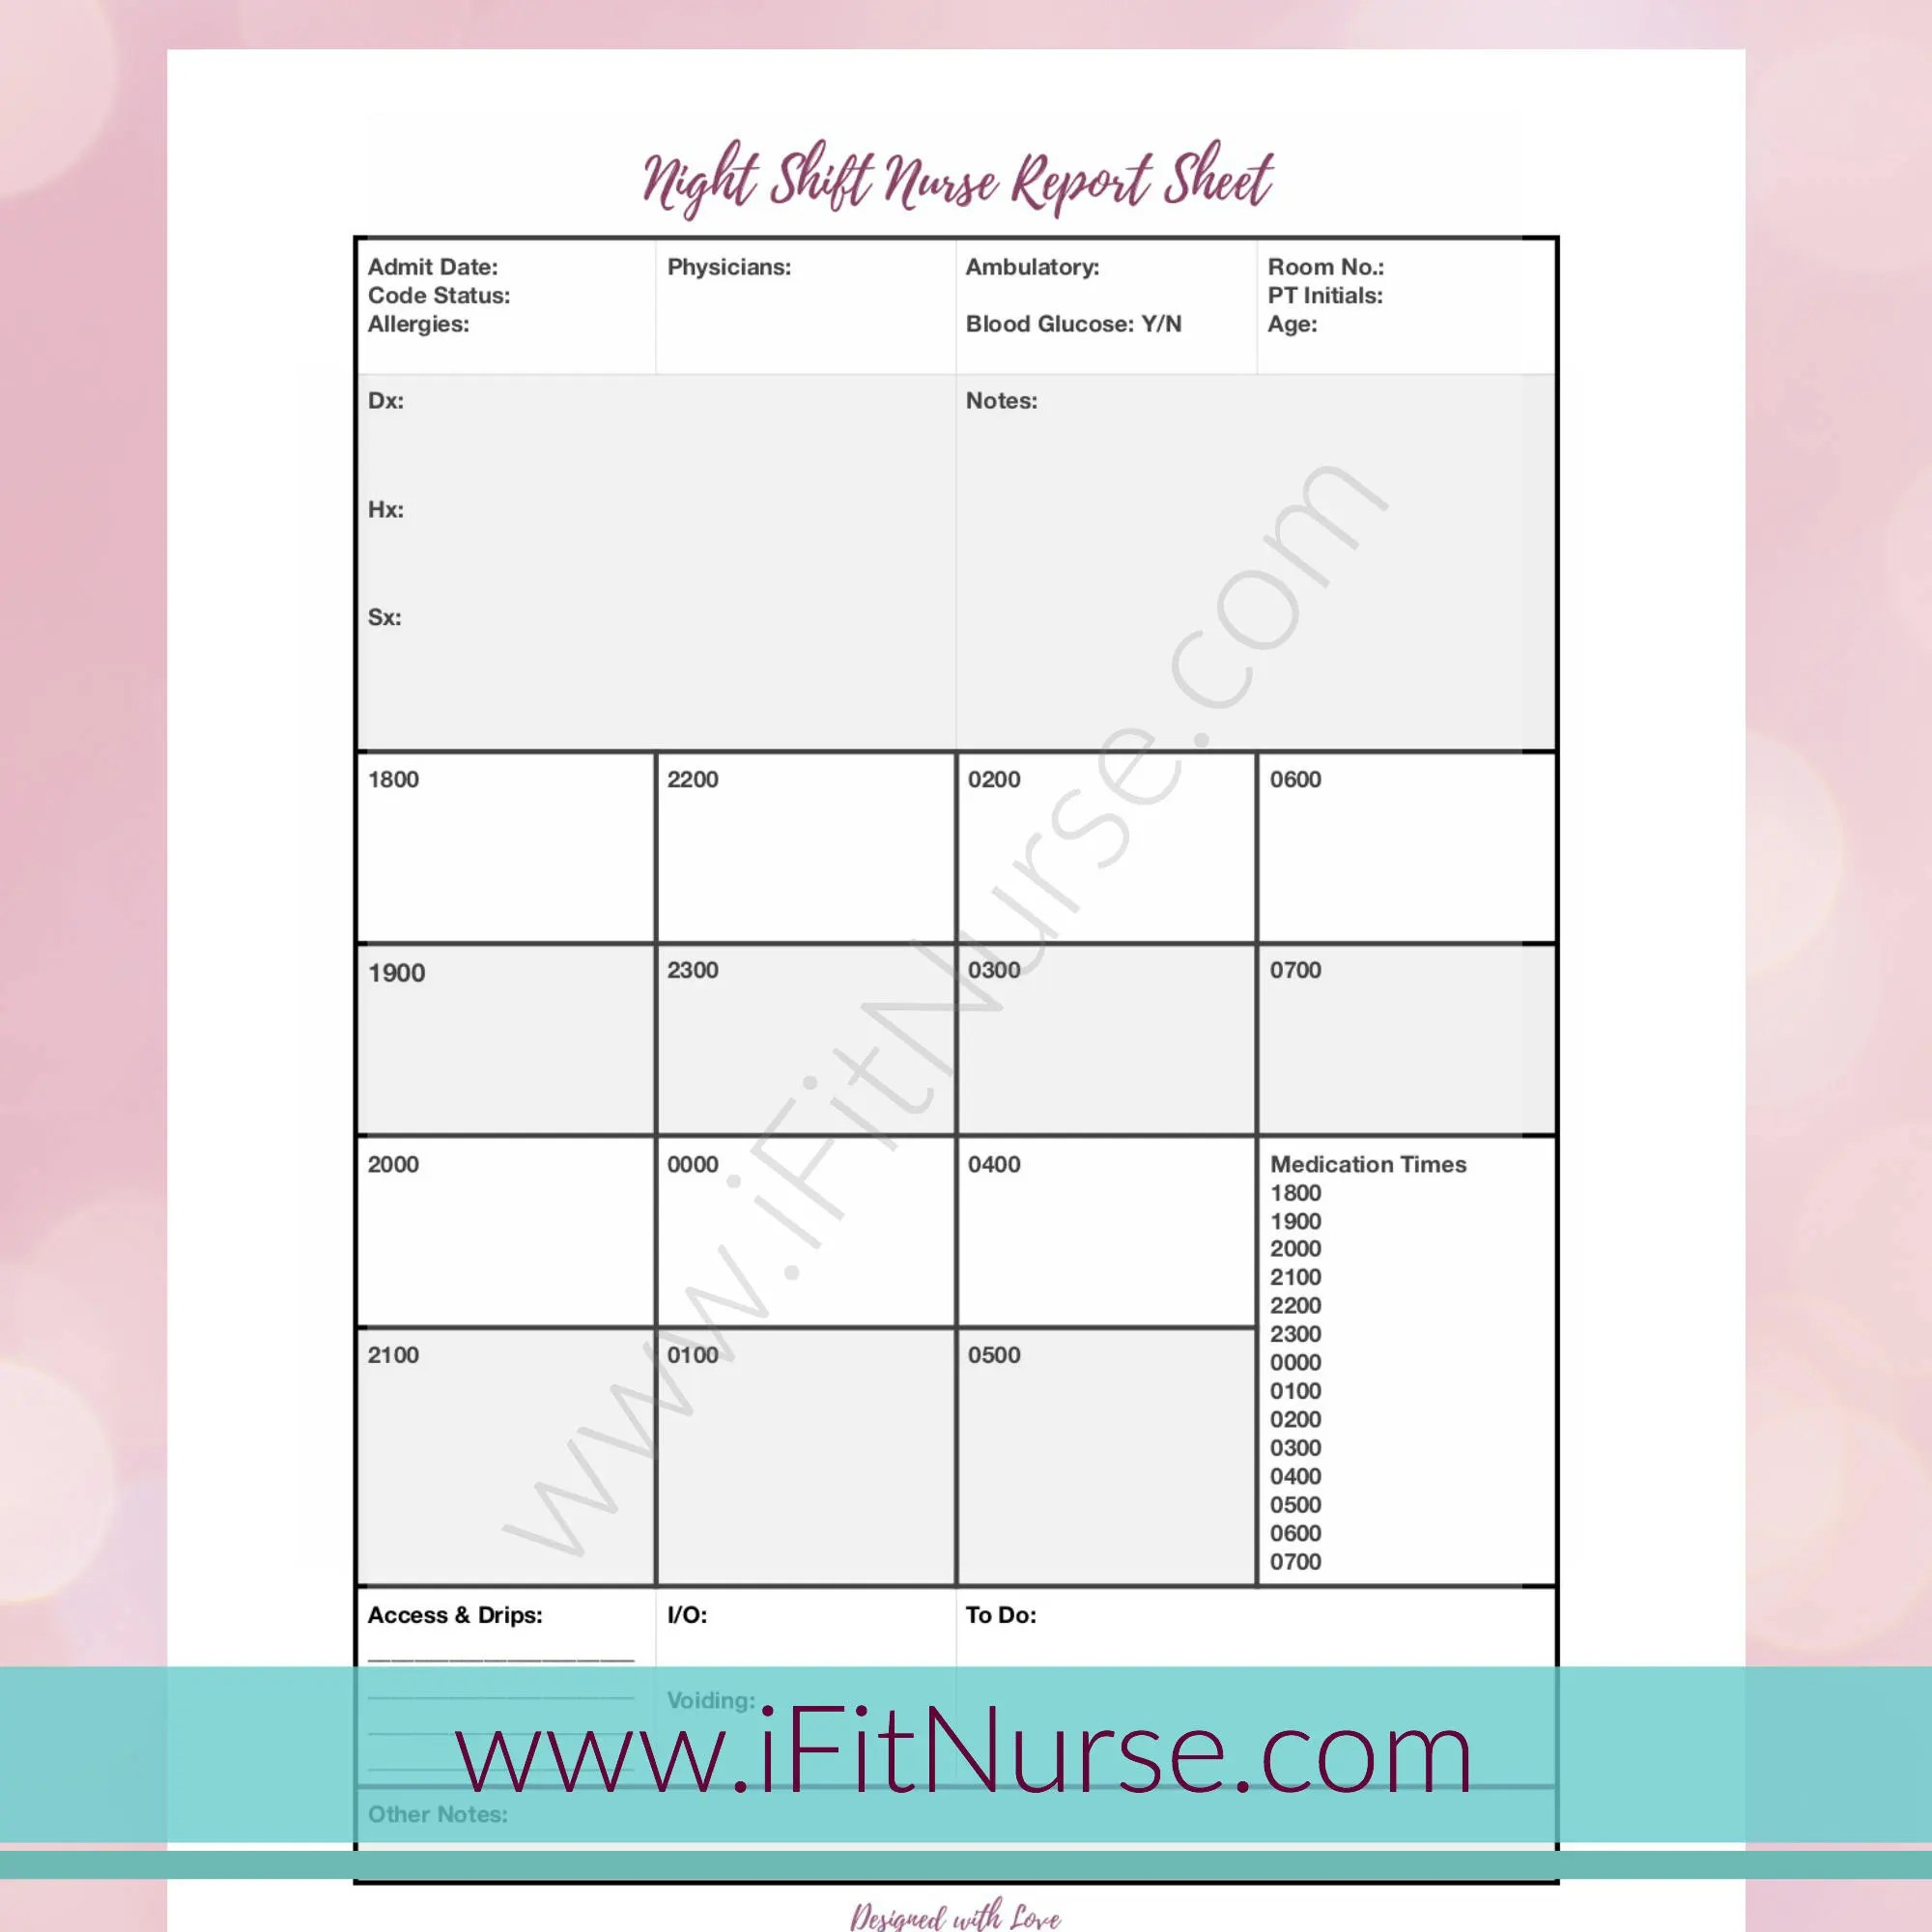 Nurse Report Sheet Night Shift